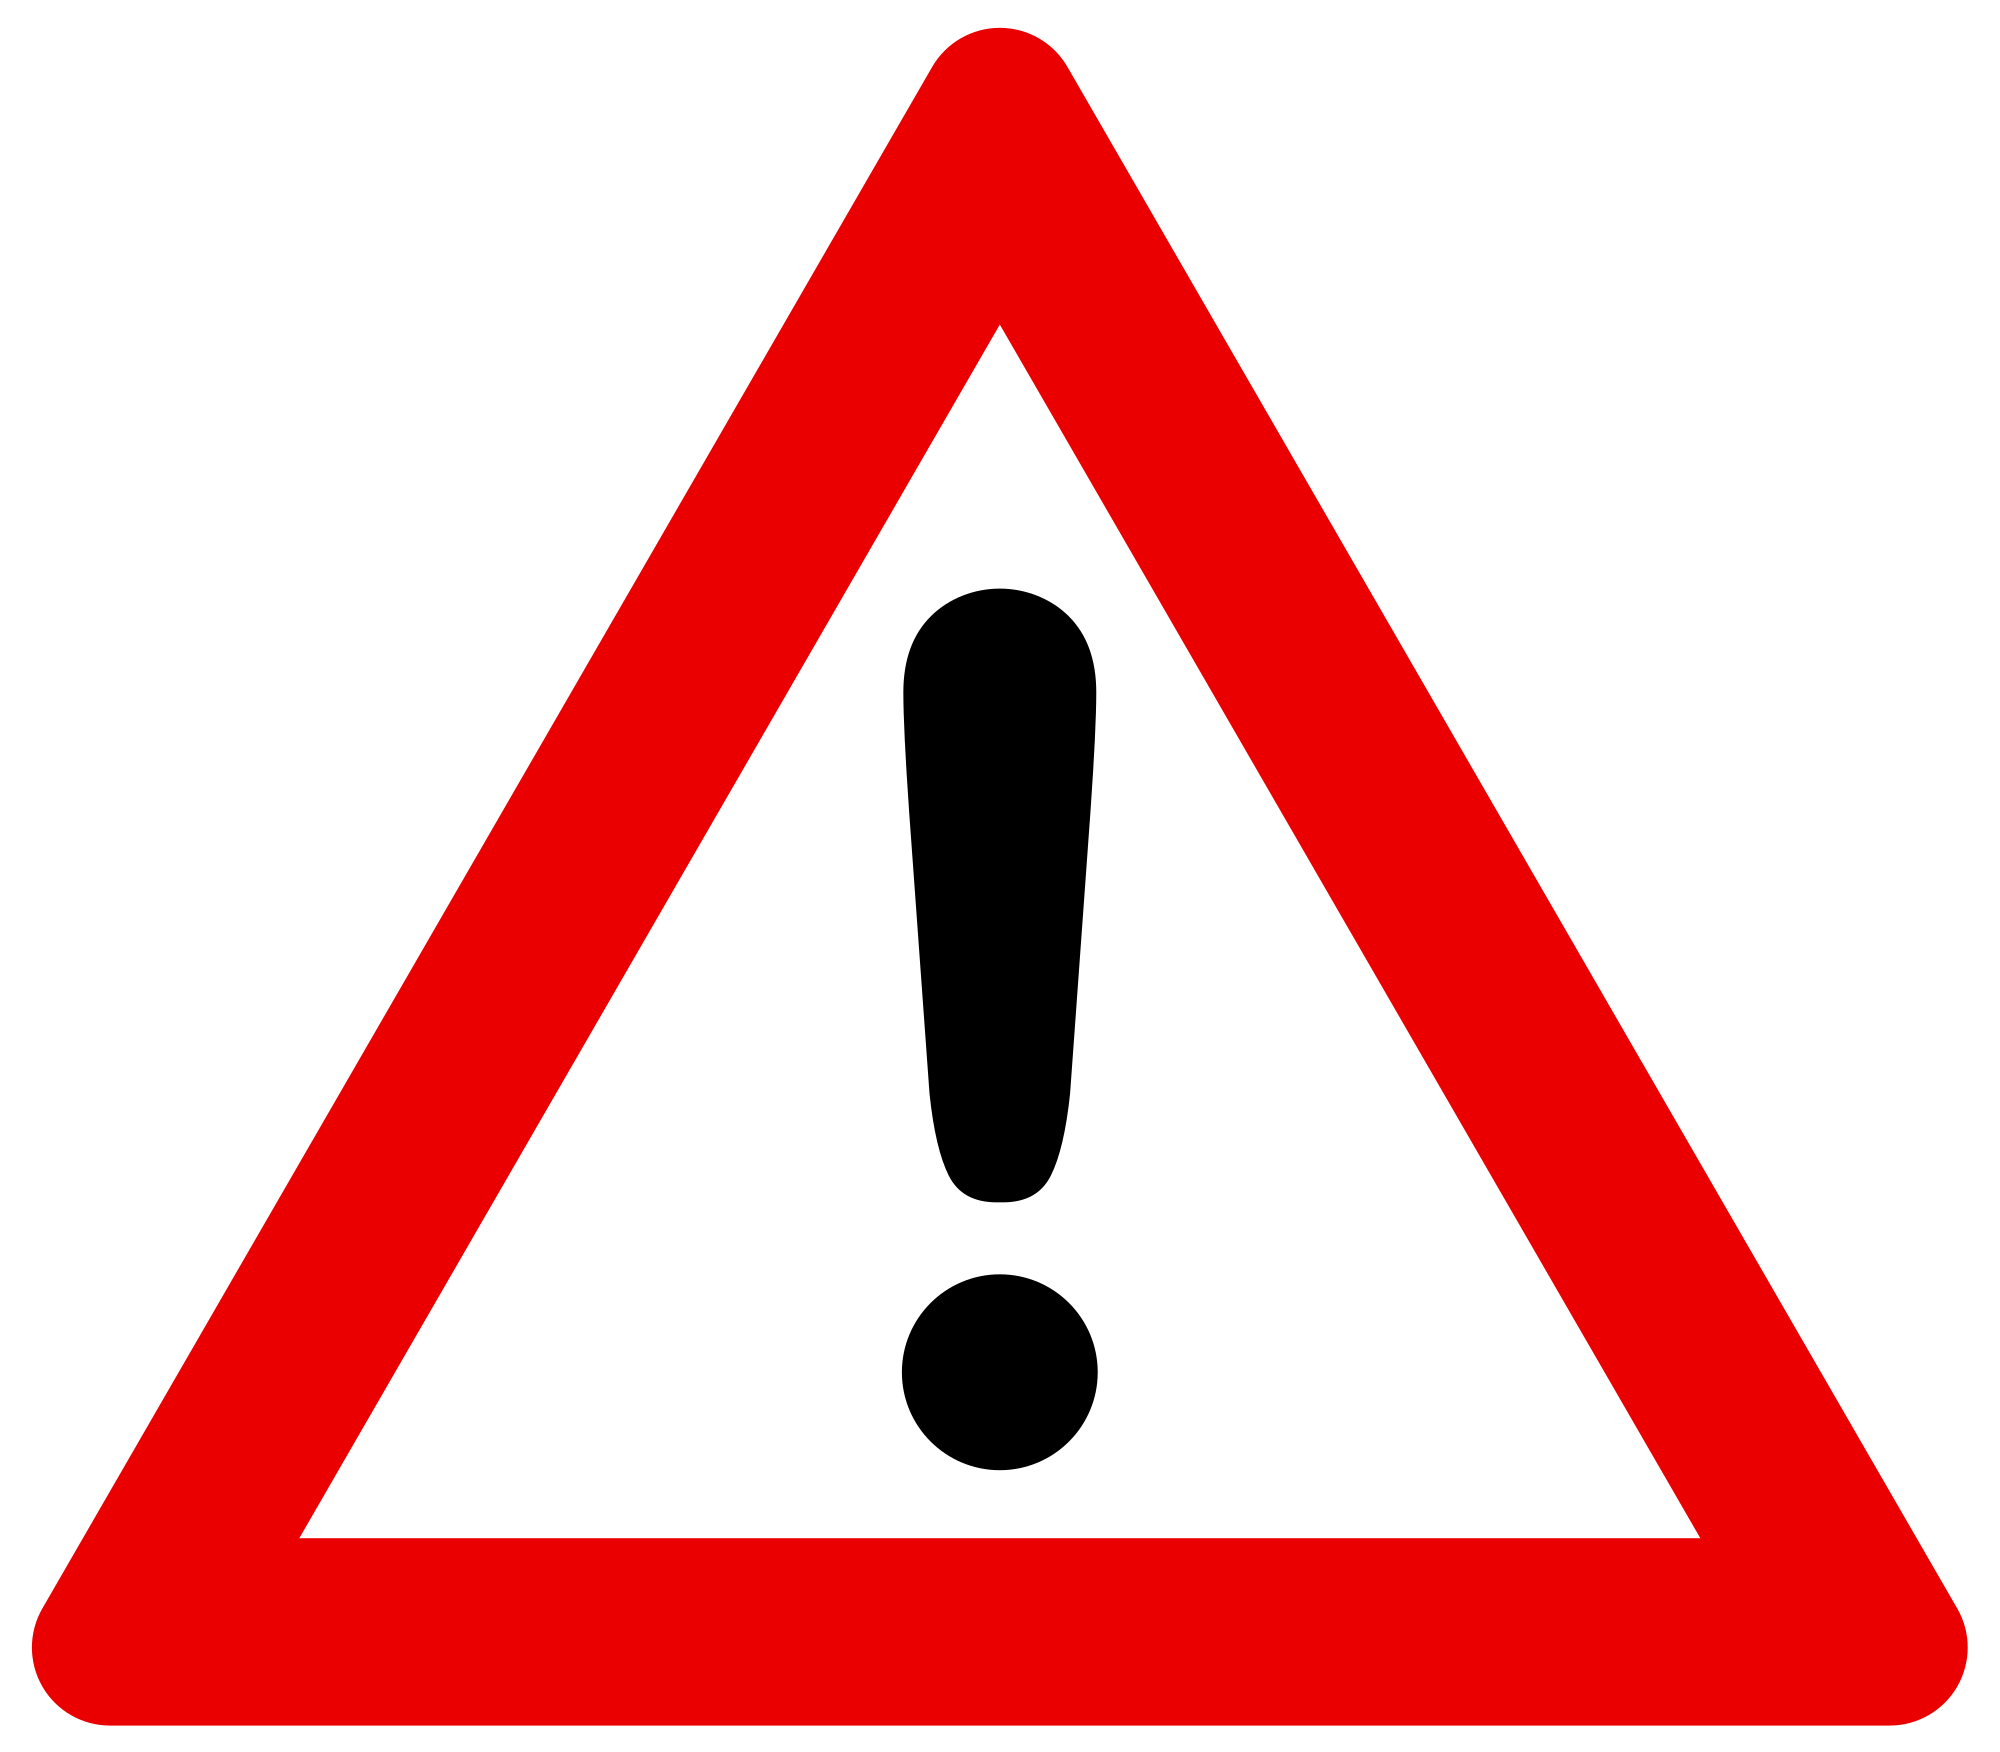 Warning Sign Illustration Computer Icons Weather Warning Iconfinder Alert Icon Free Icons Transparent Background Png Clipa Computer Icon Free Icons Clip Art